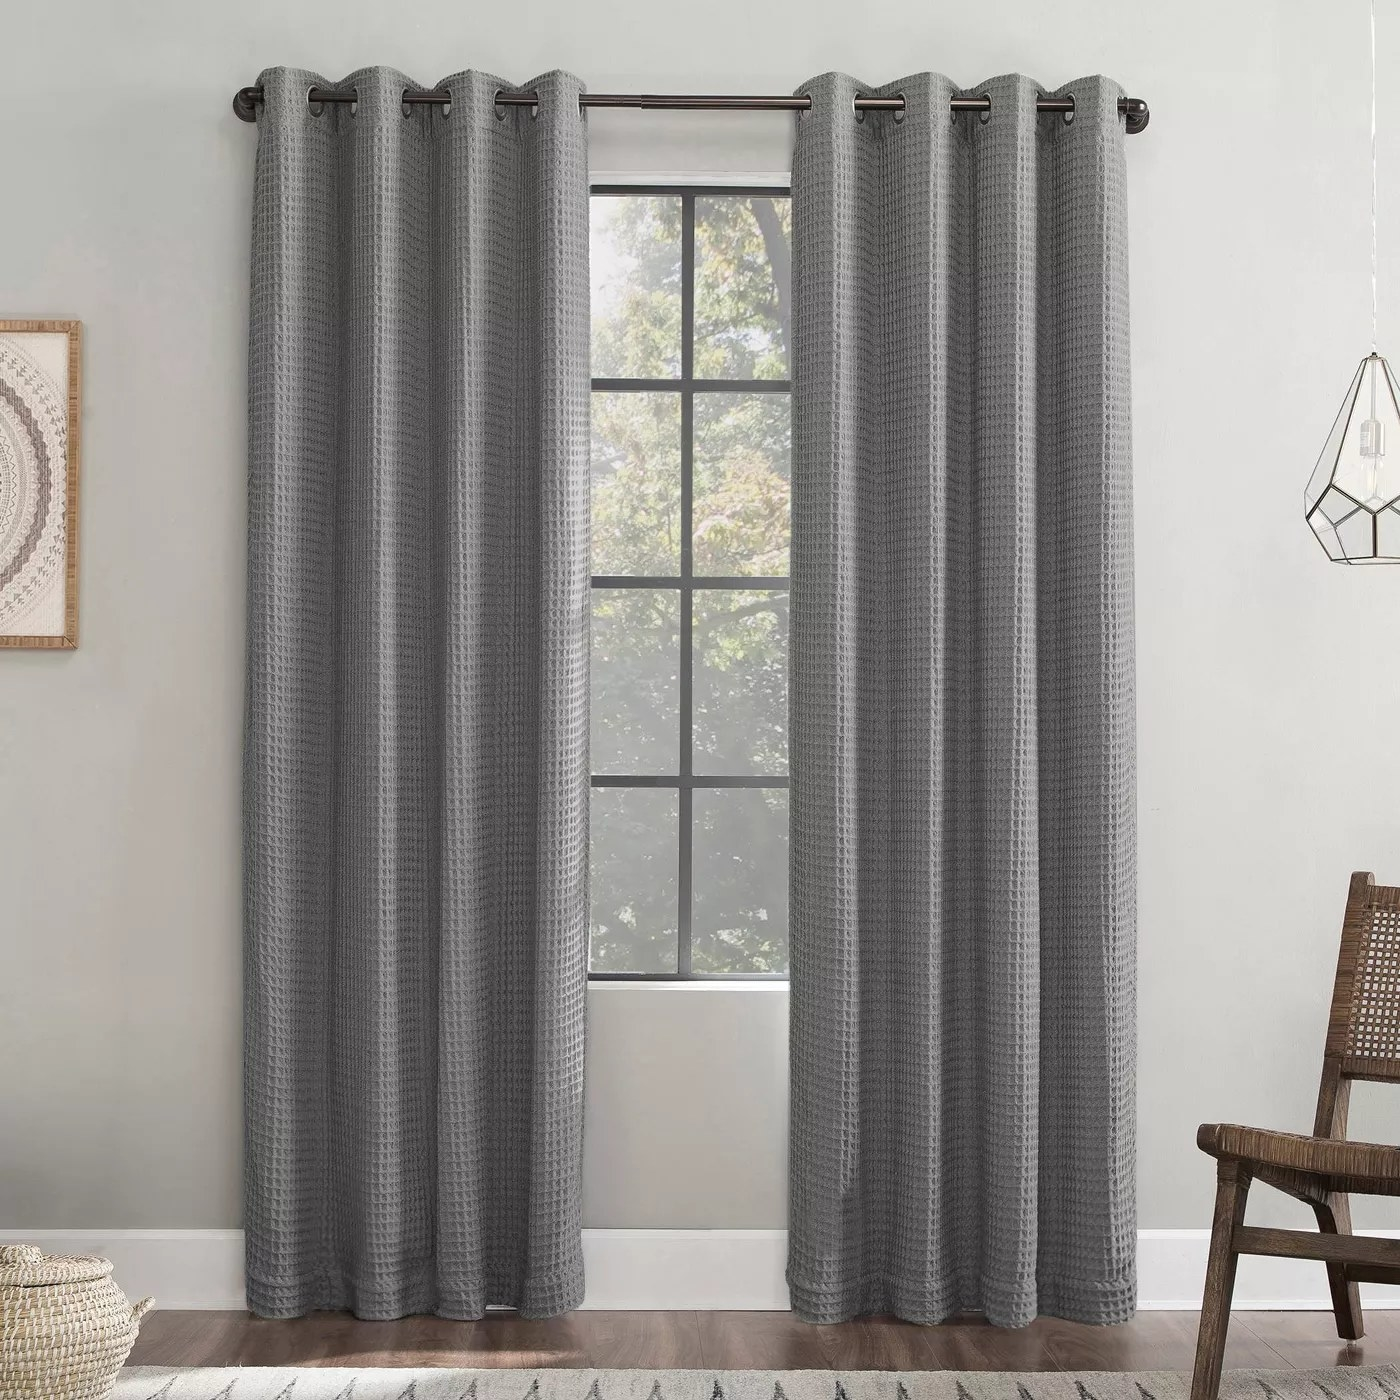 The waffle-textured blackout curtains in gray